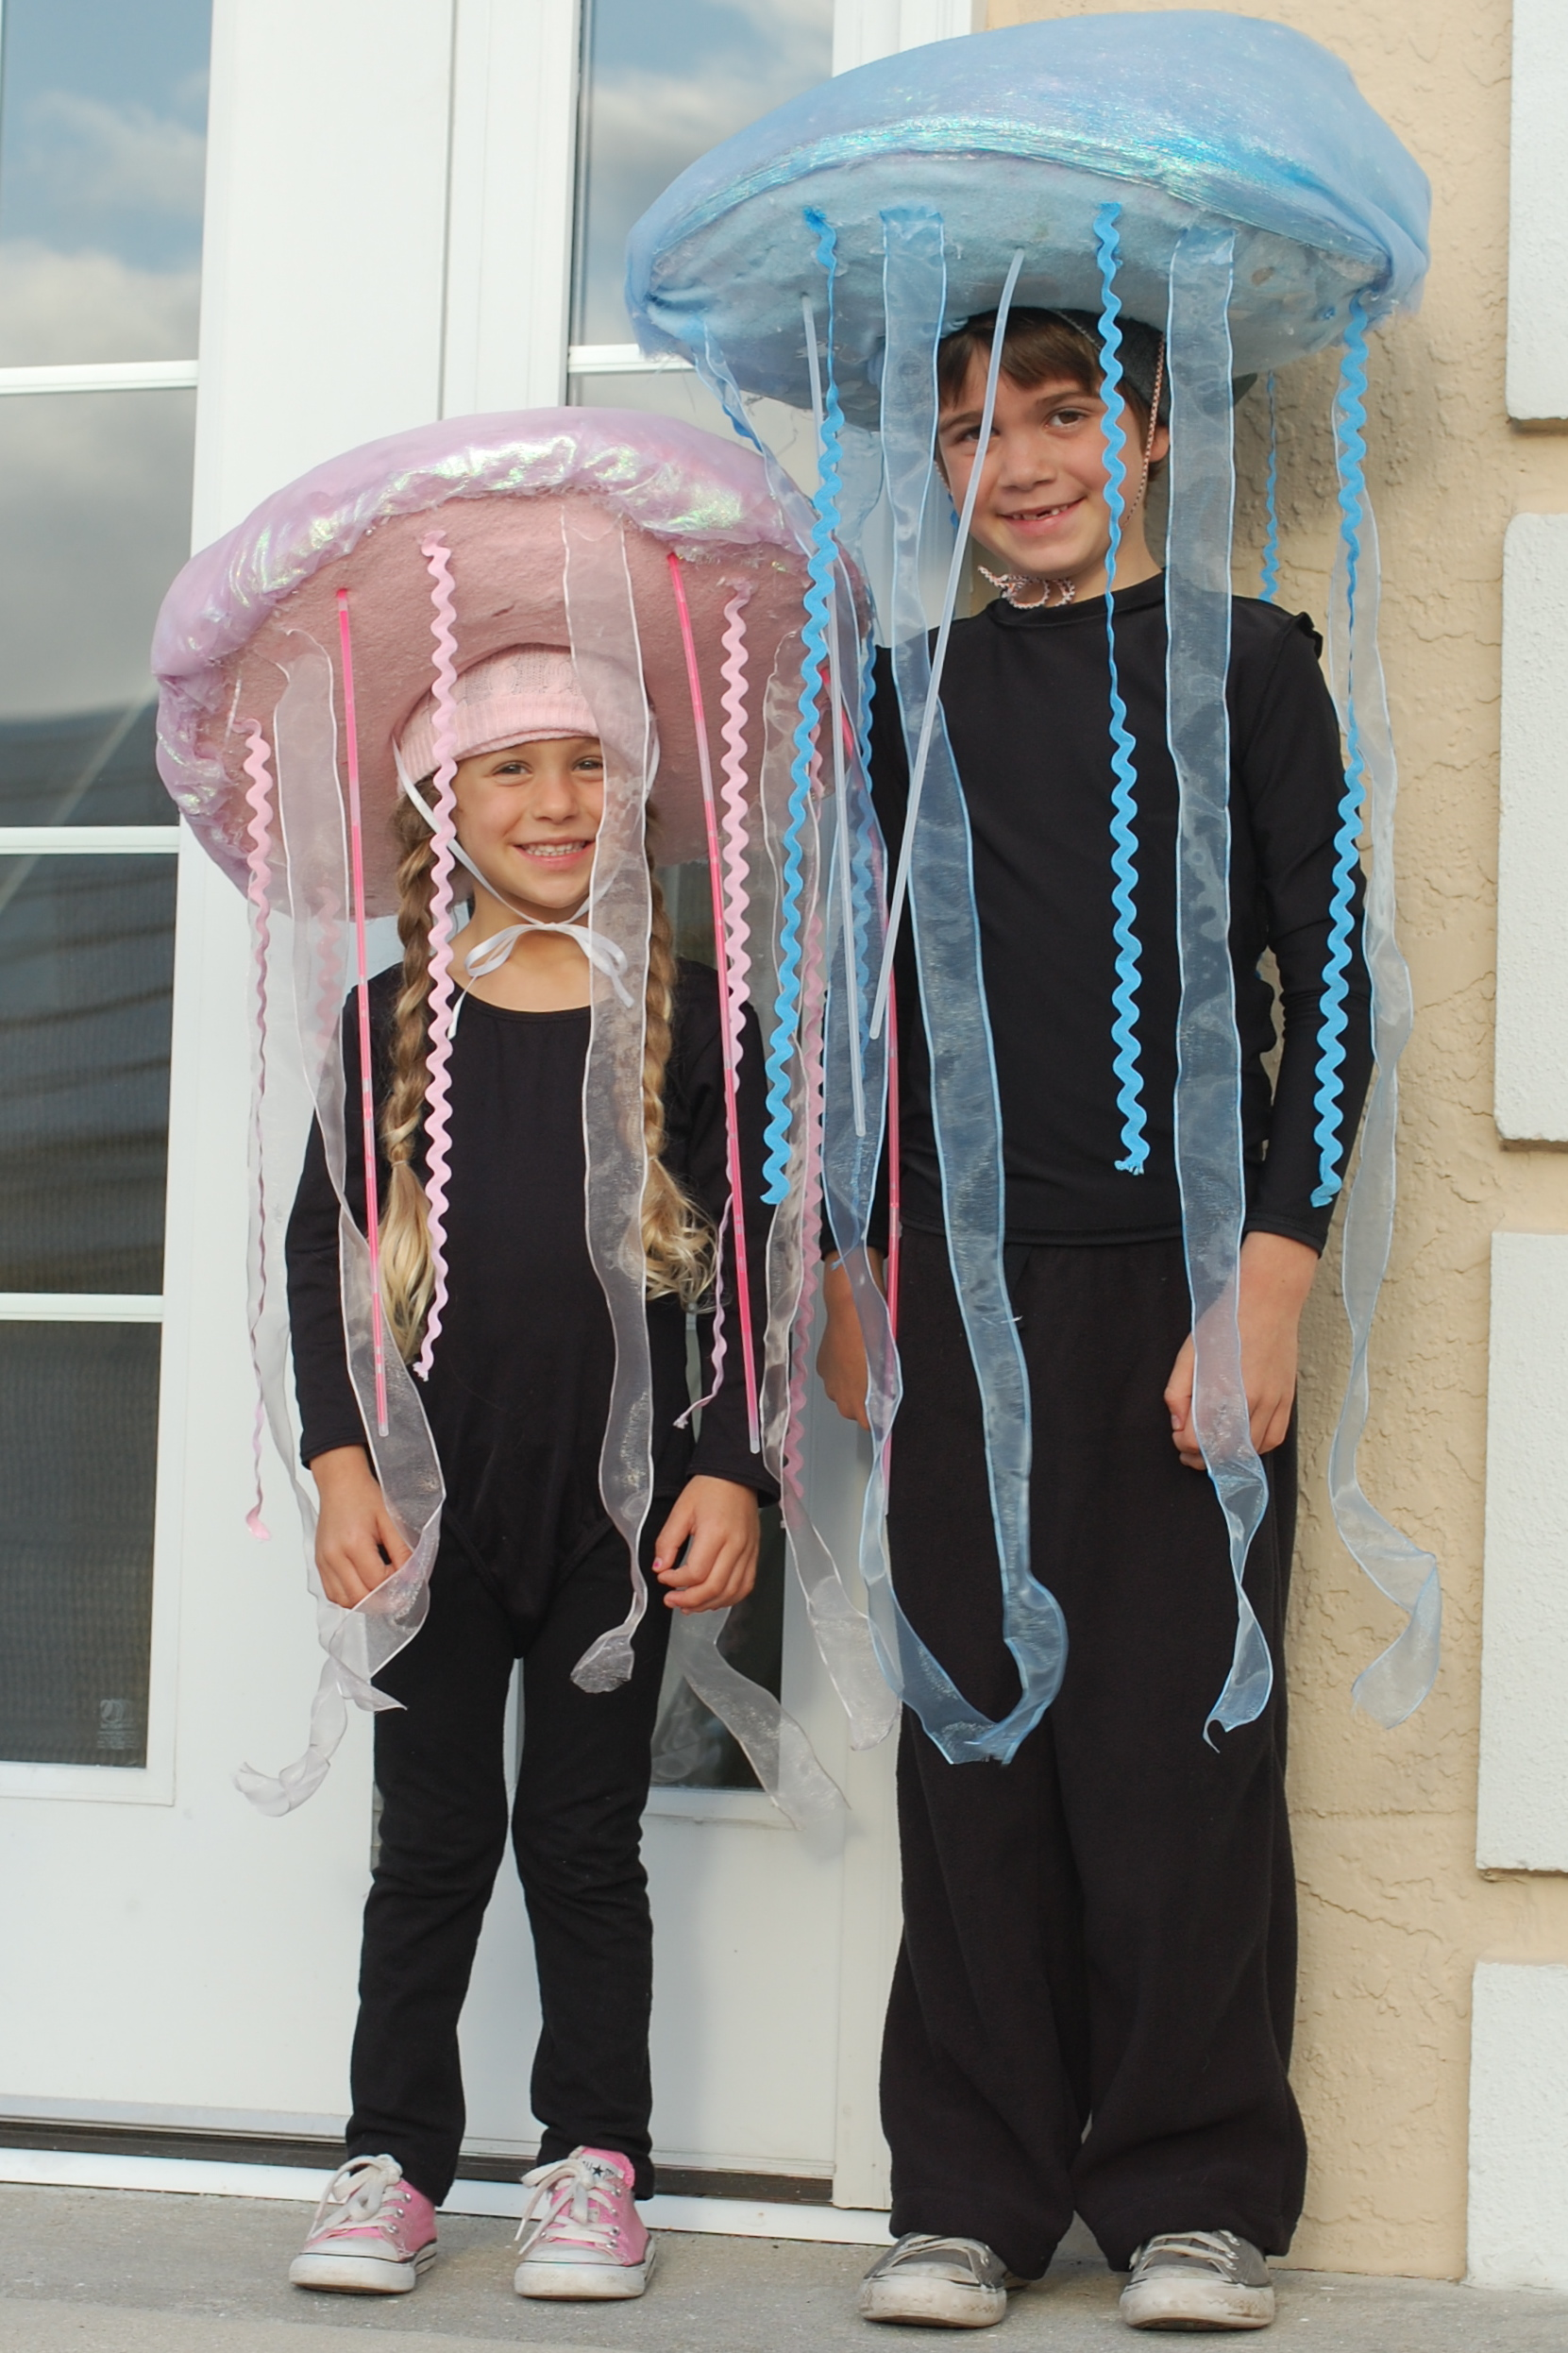 Glow in the dark jellyfish costume tutorial a small snippet dsc0184 solutioingenieria Choice Image